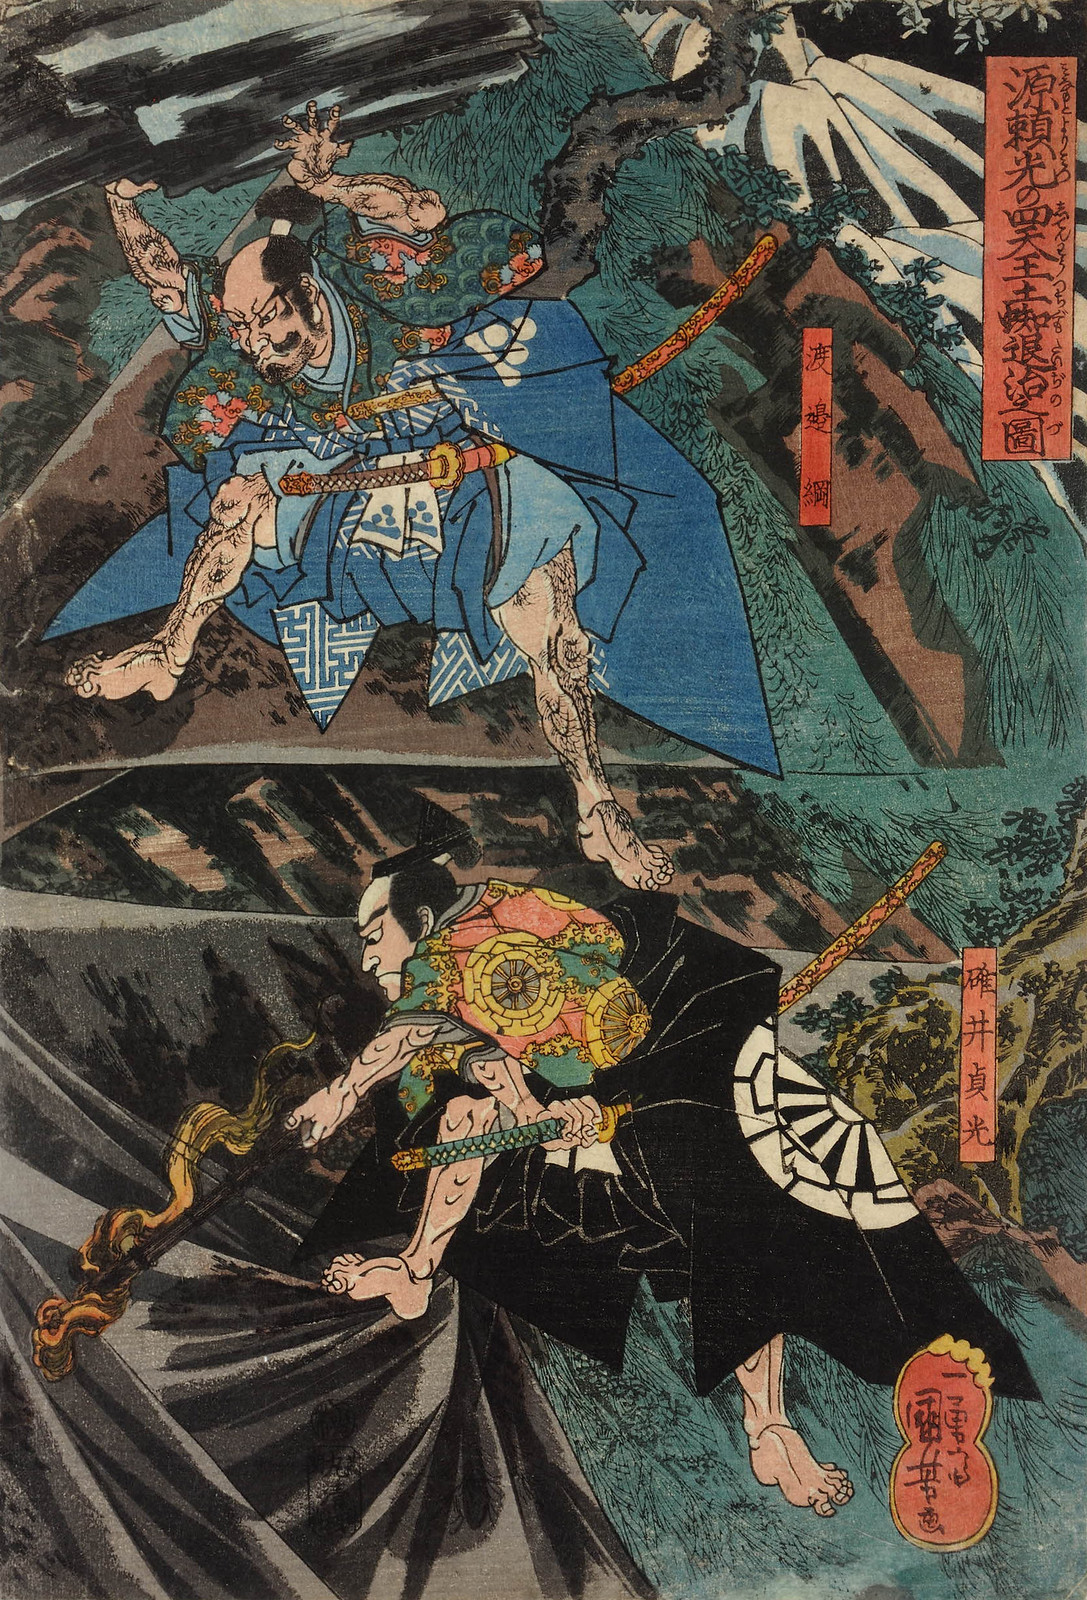 Utagawa Kuniyoshi - Minamoto no Yorimitsu no shitenno tsuchigumo taiji no zu, (The Earth Spider slain by Minamoto no Yorimitsu's retainers) 18th c (right panel)